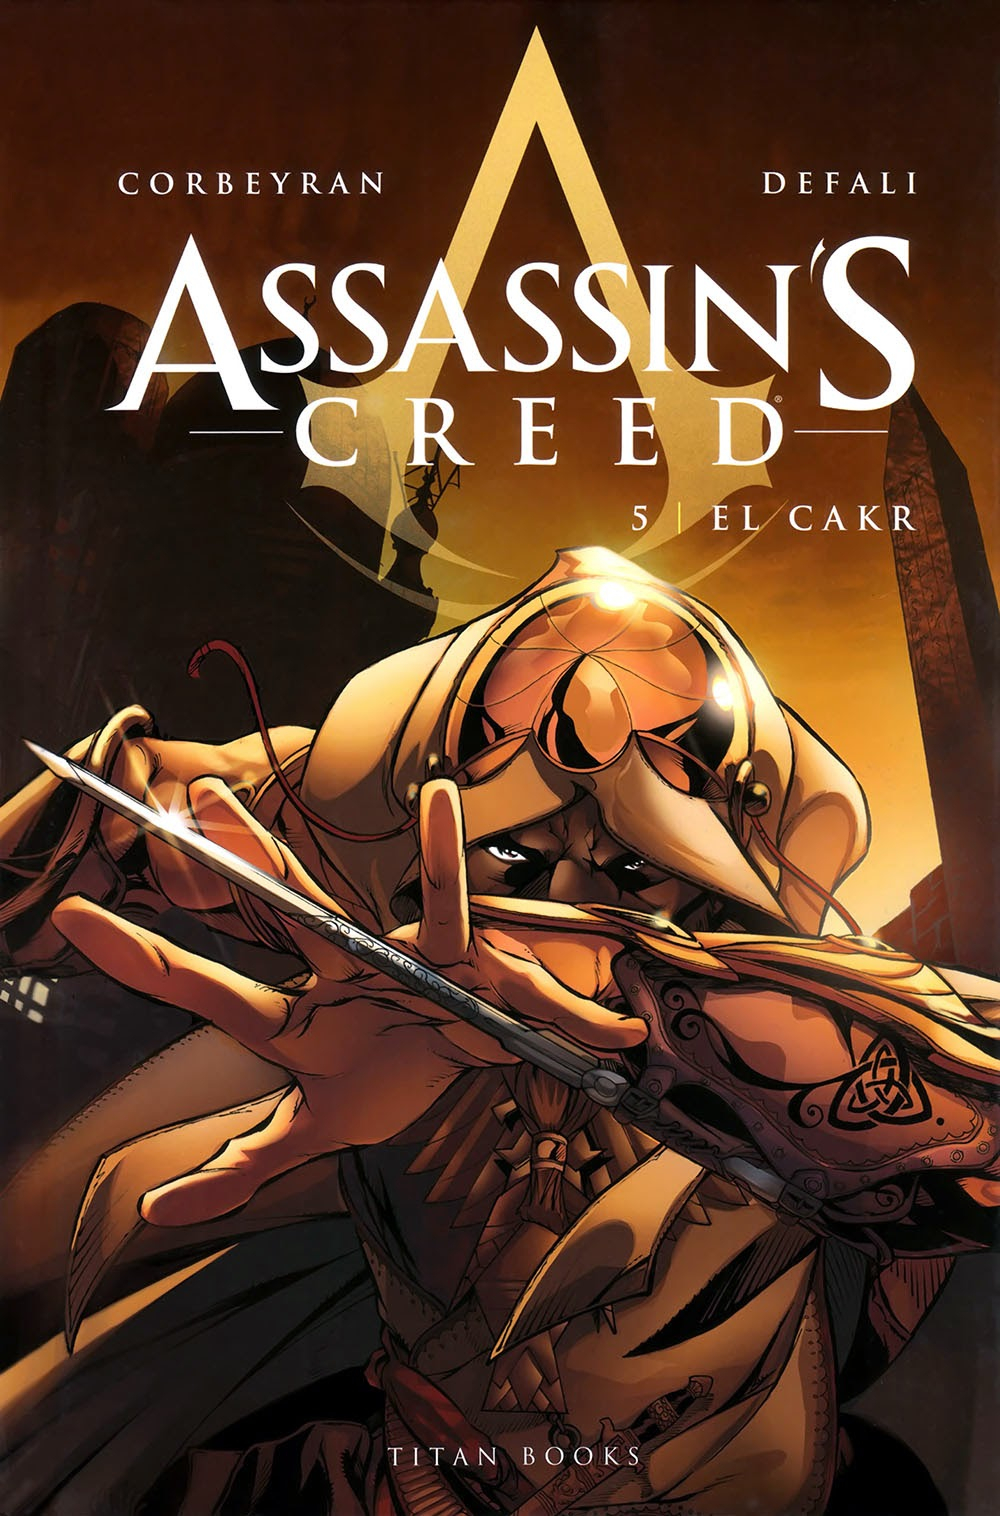 Assassin S Creed Viewcomic Reading Comics Online For Free 2019